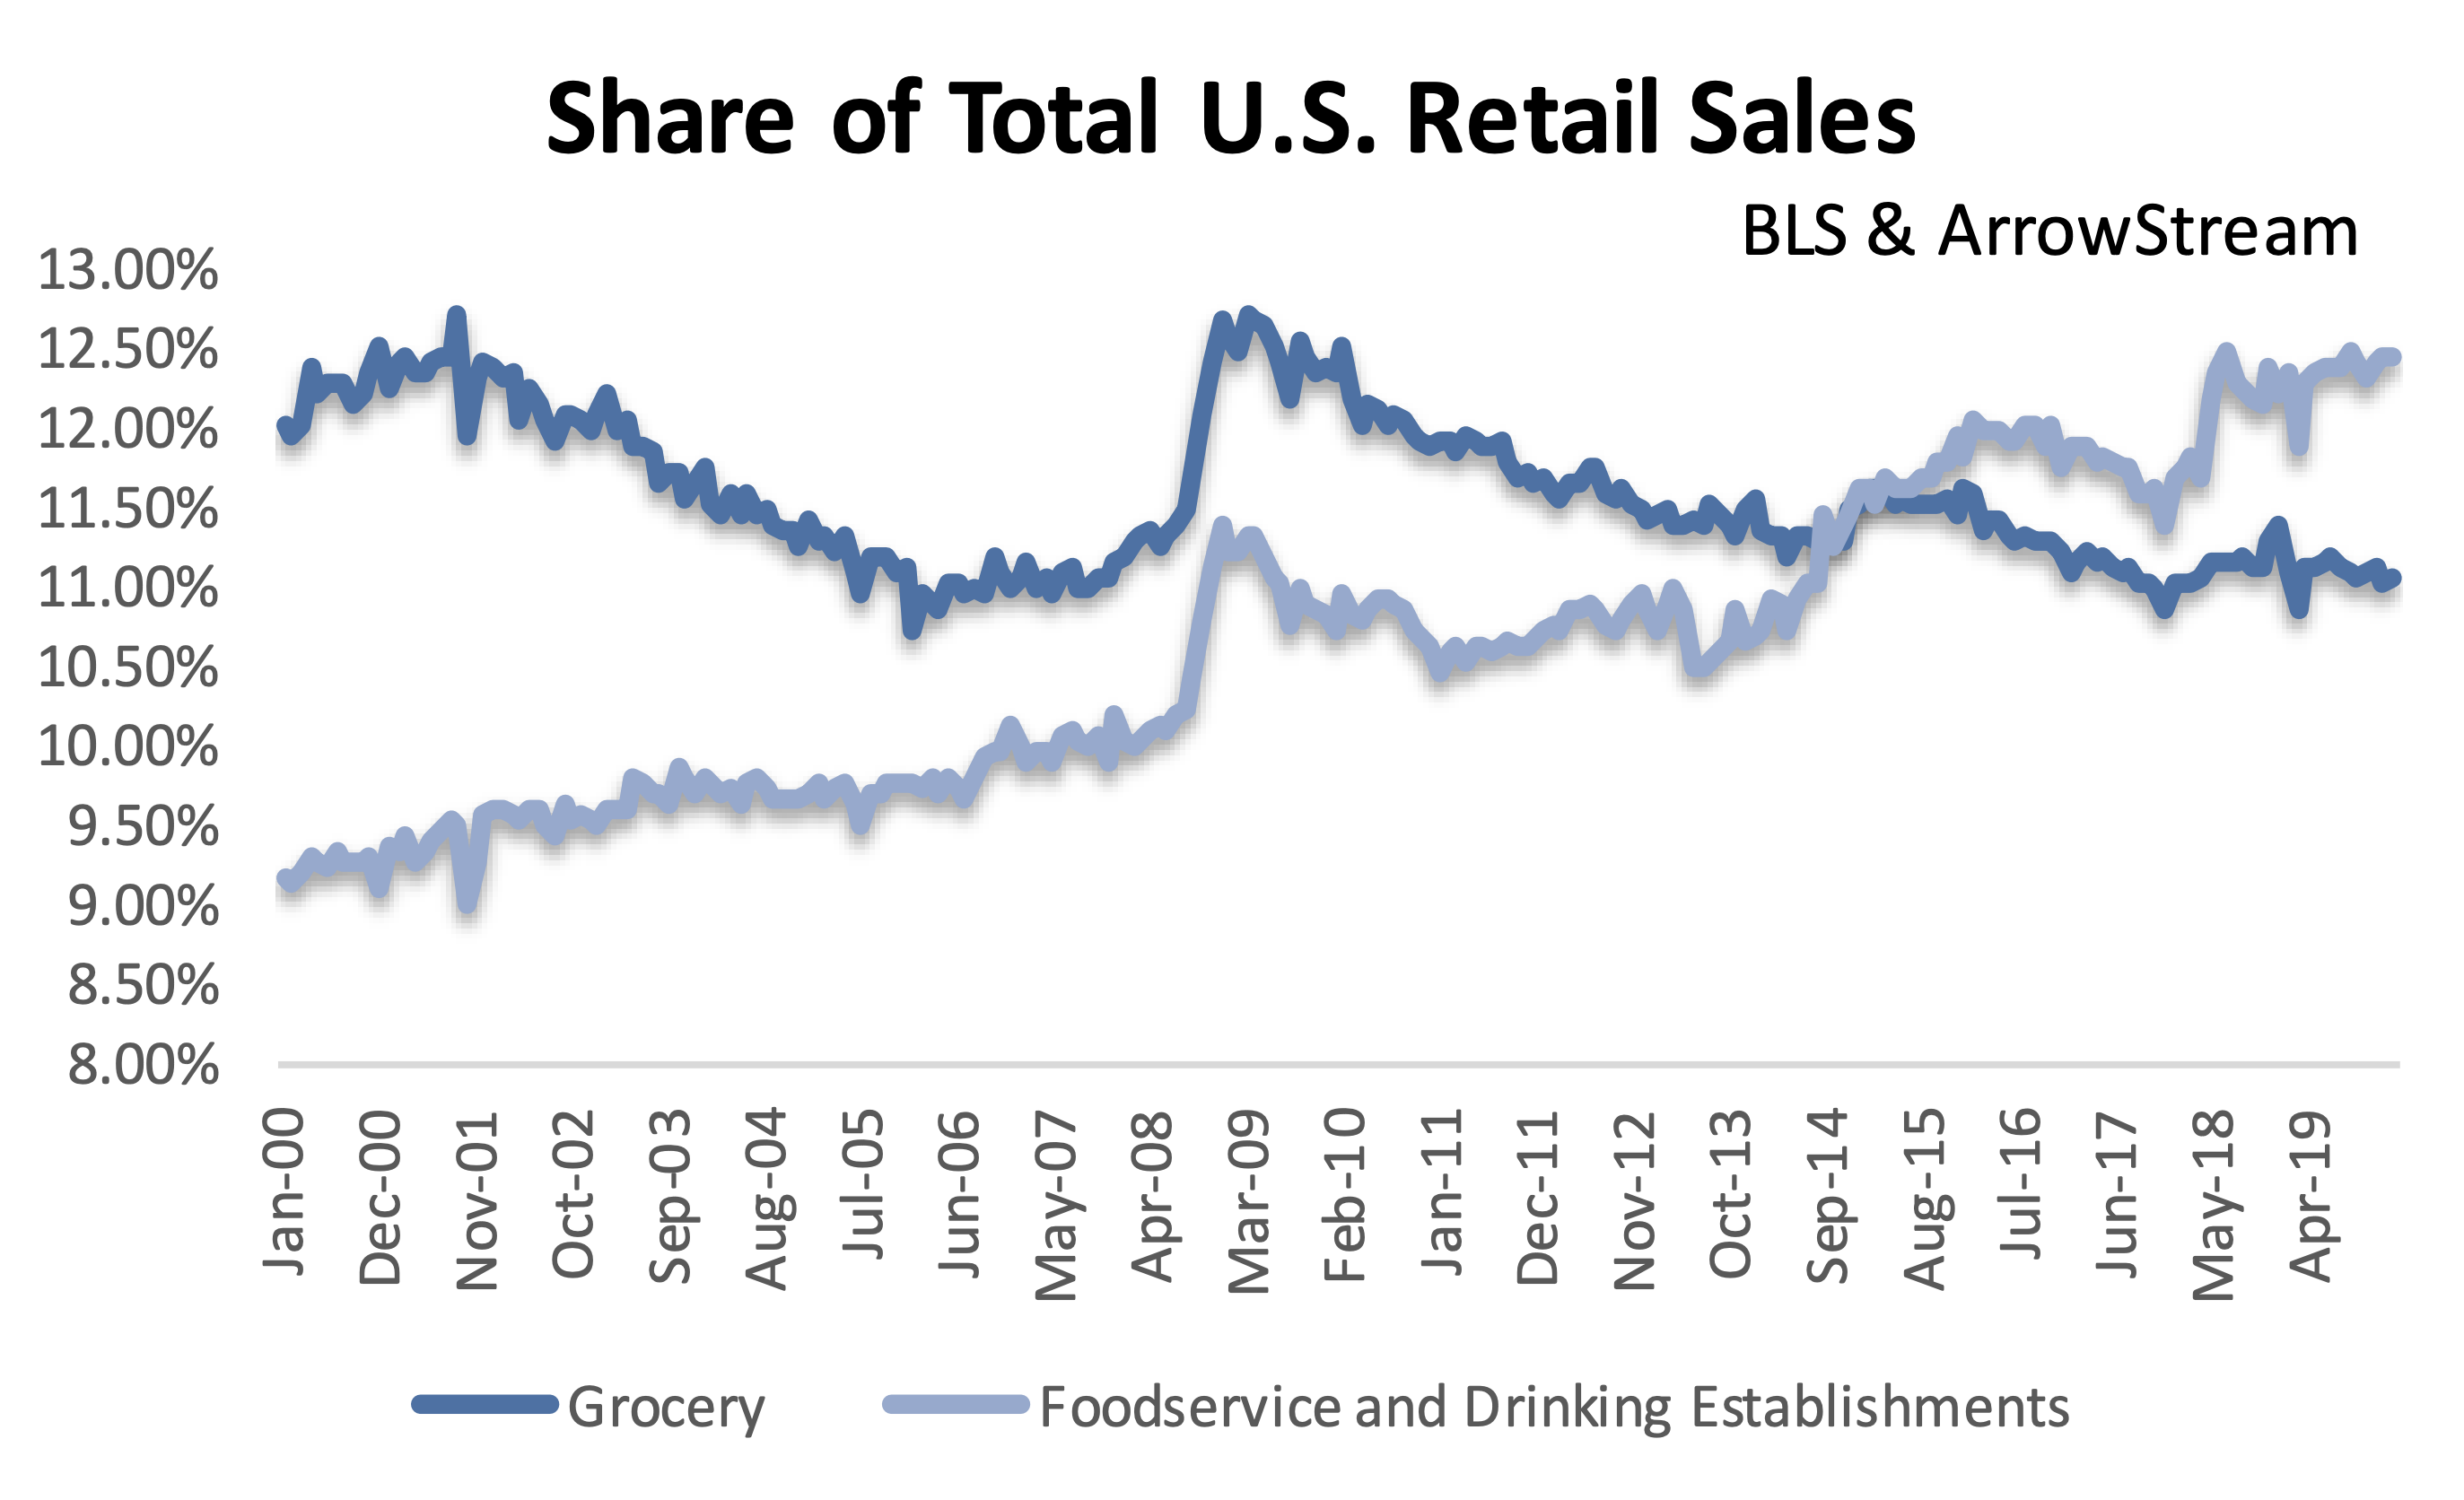 Restaurants the Third Largest Share of Retail Sales on Record